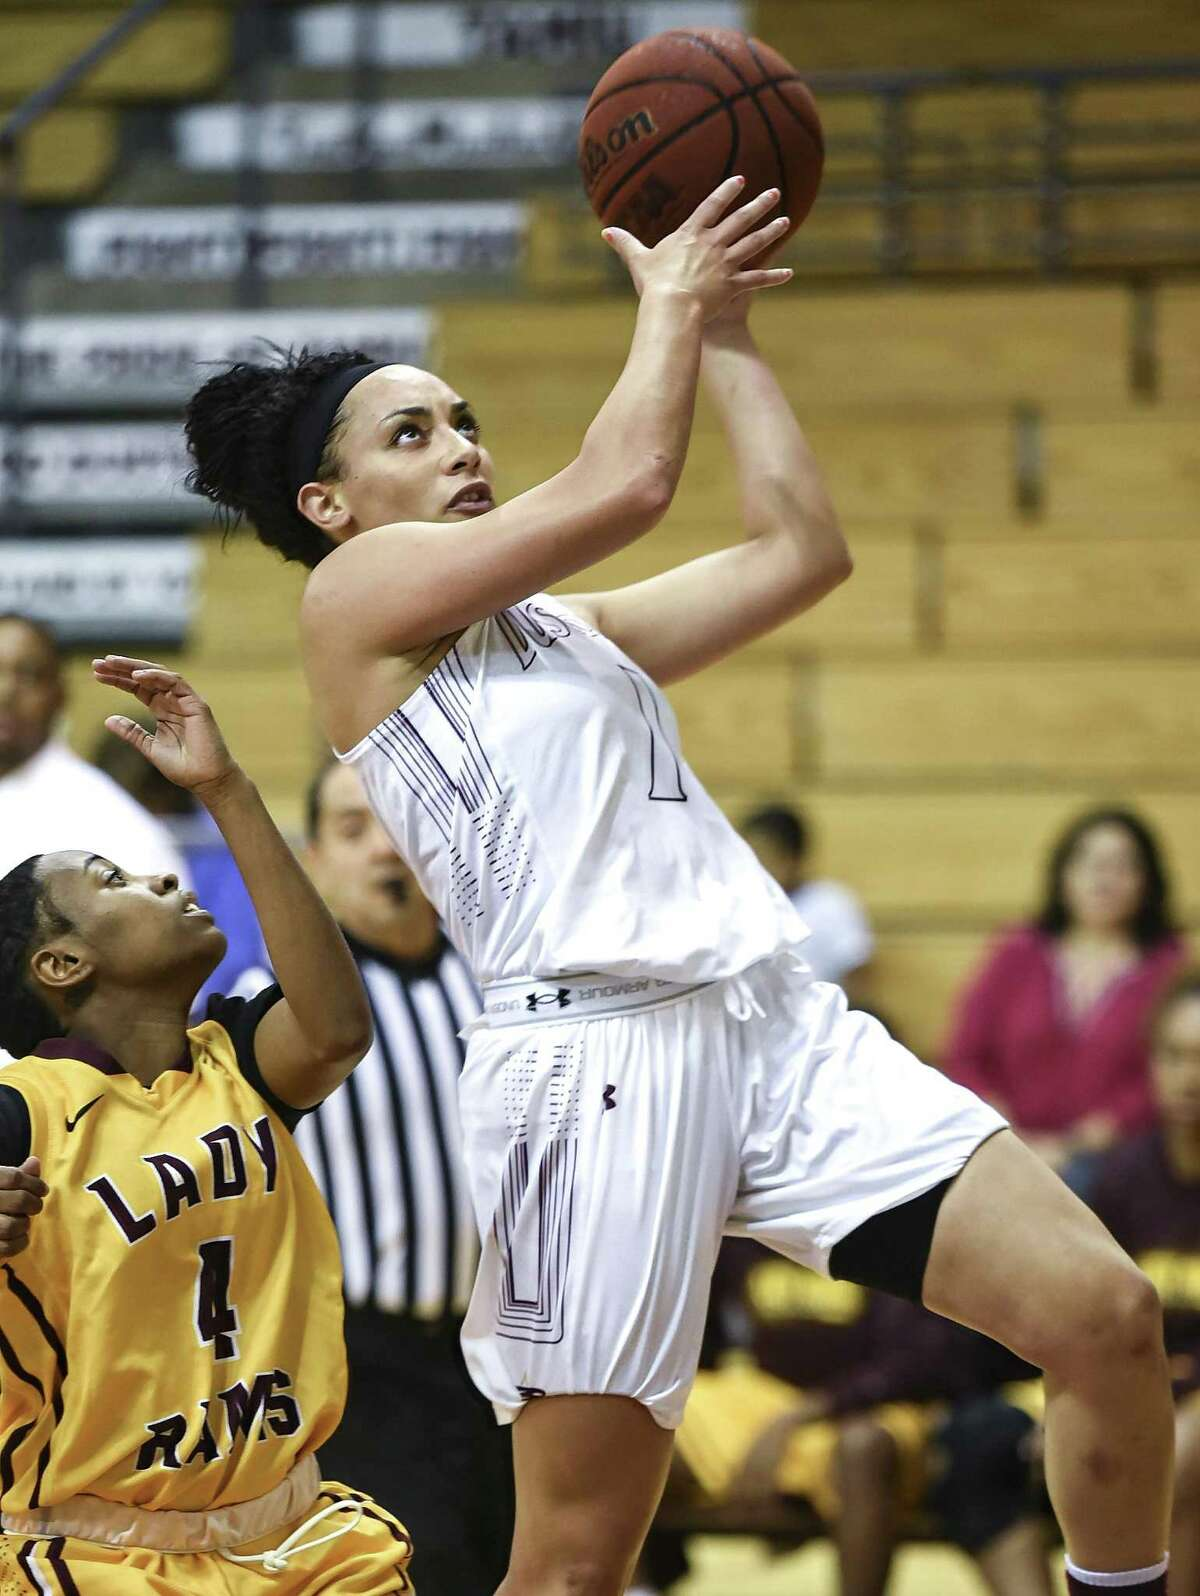 Tantashea Giger was the Heartland Conference's top returning rebounder and second-leading scorer from a year ago.